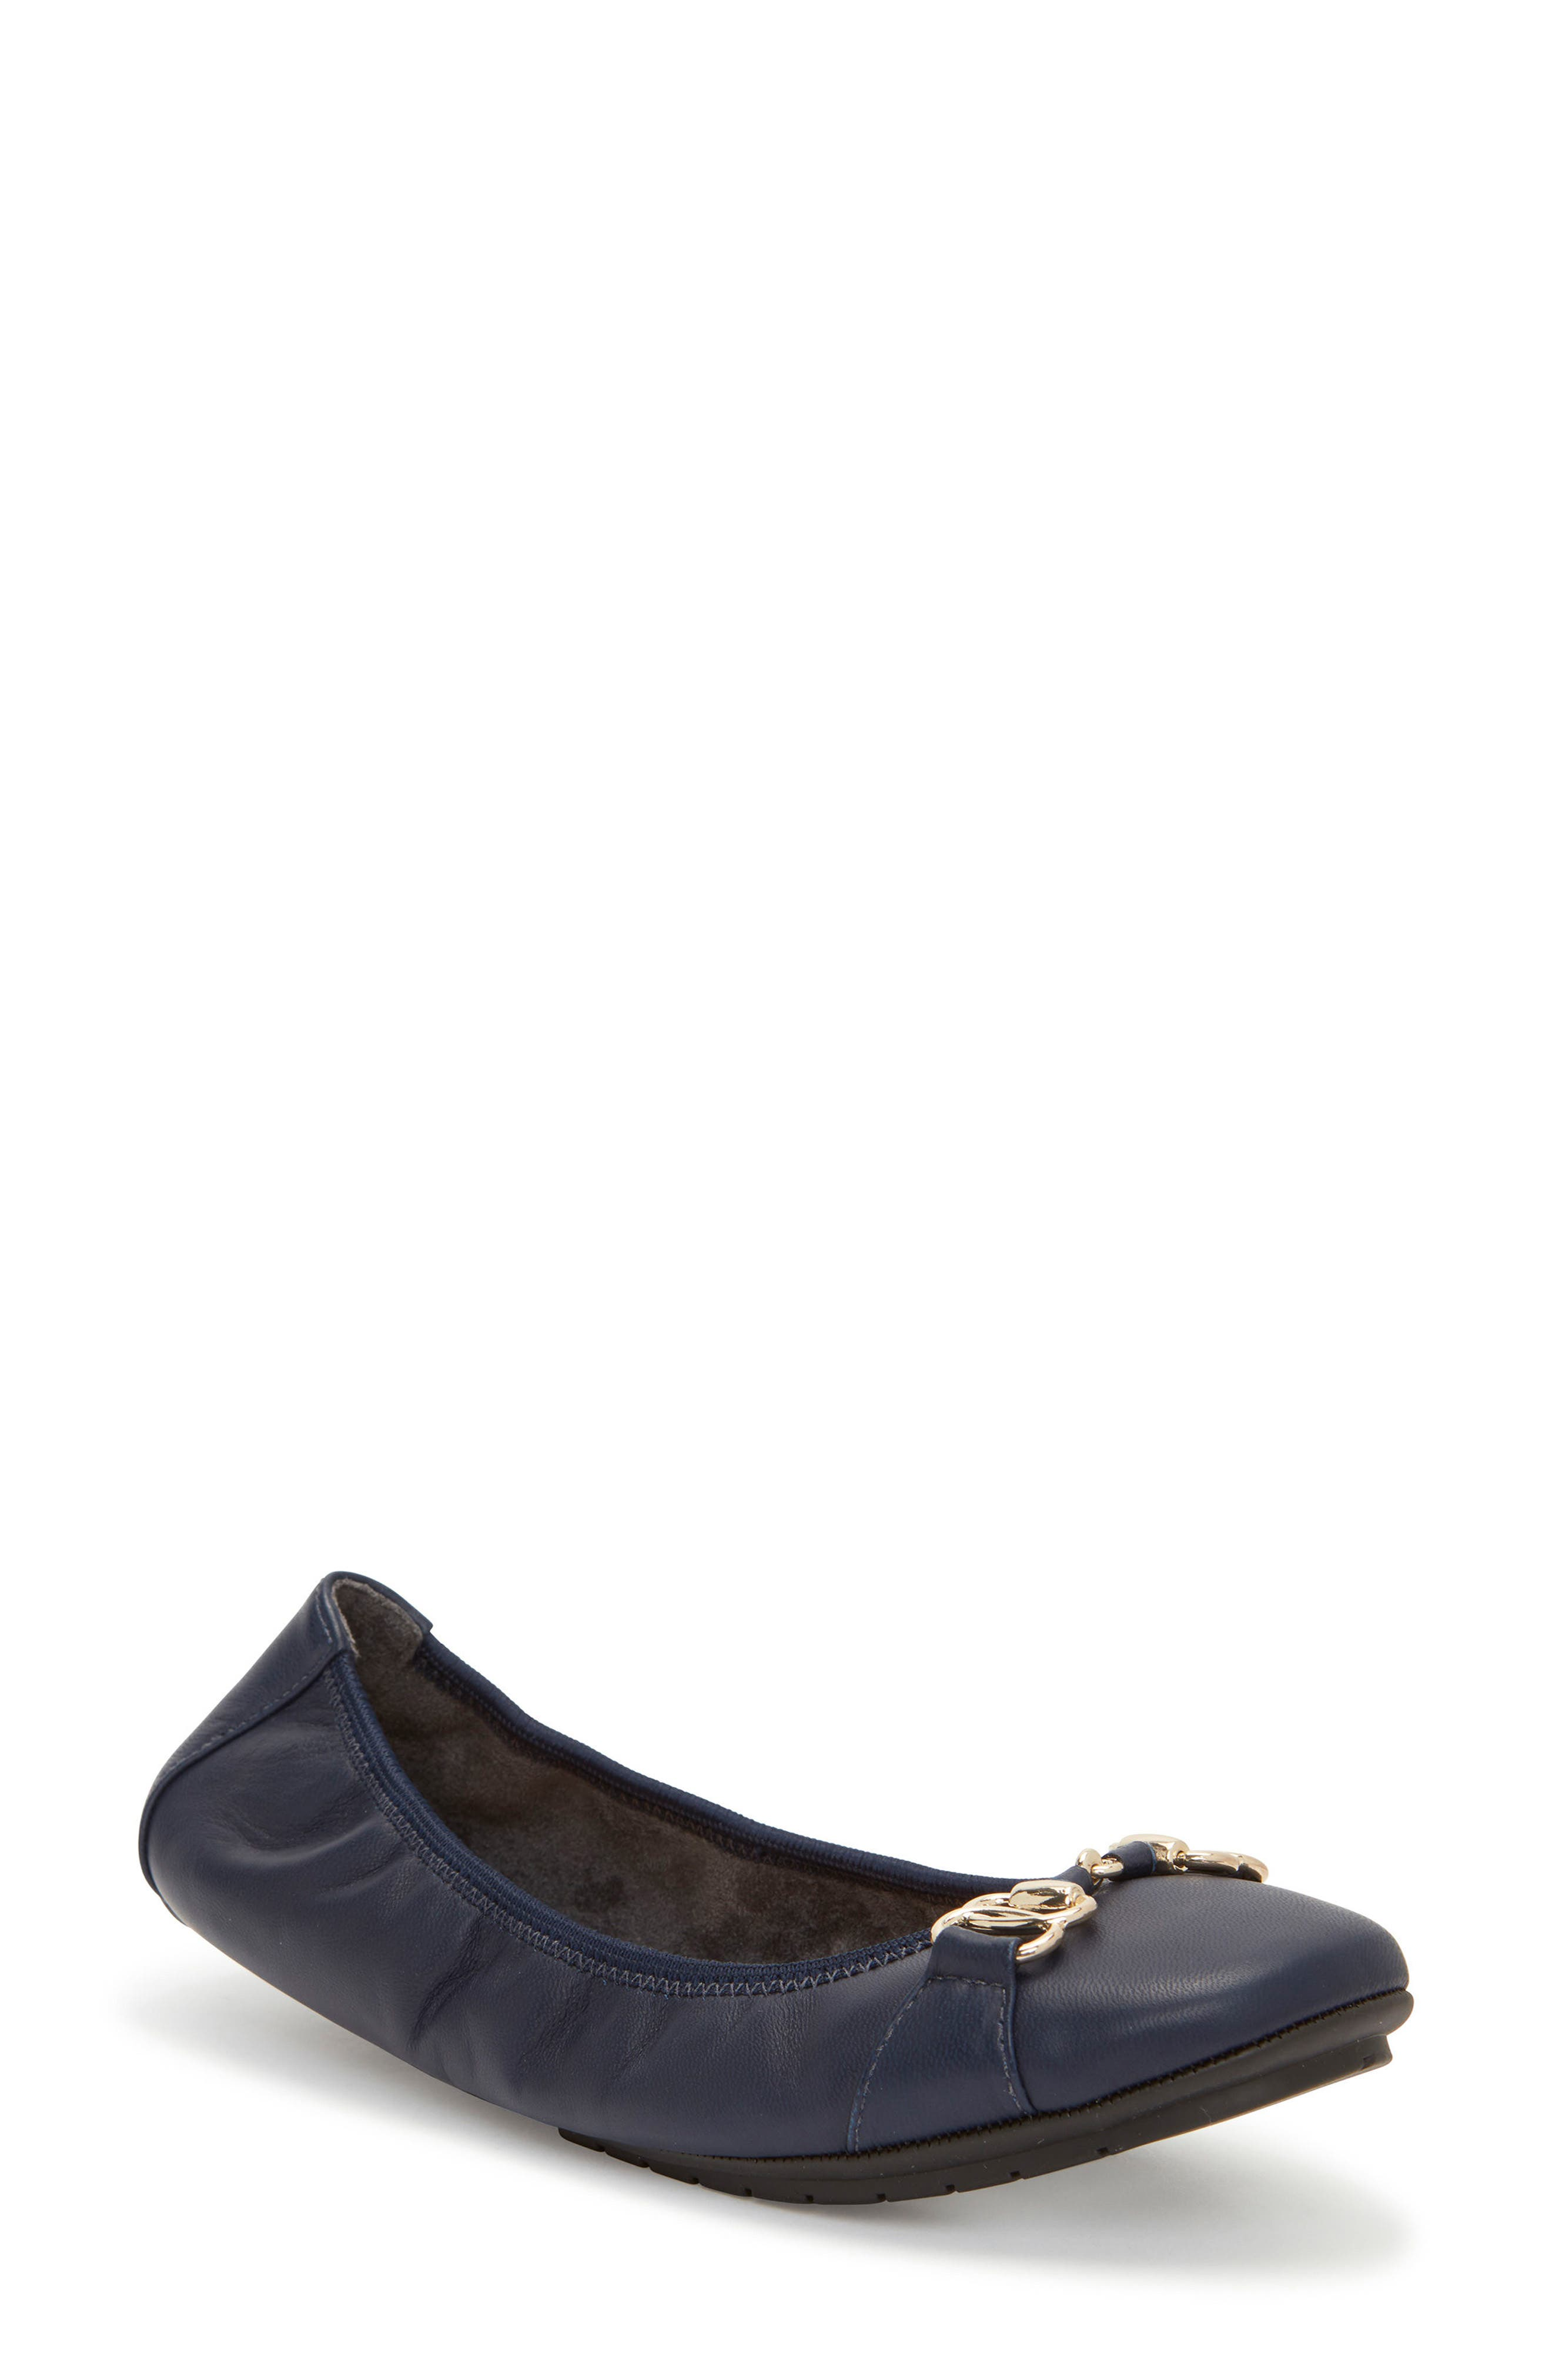 Olympia Skimmer Flat,                         Main,                         color, Navy Leather